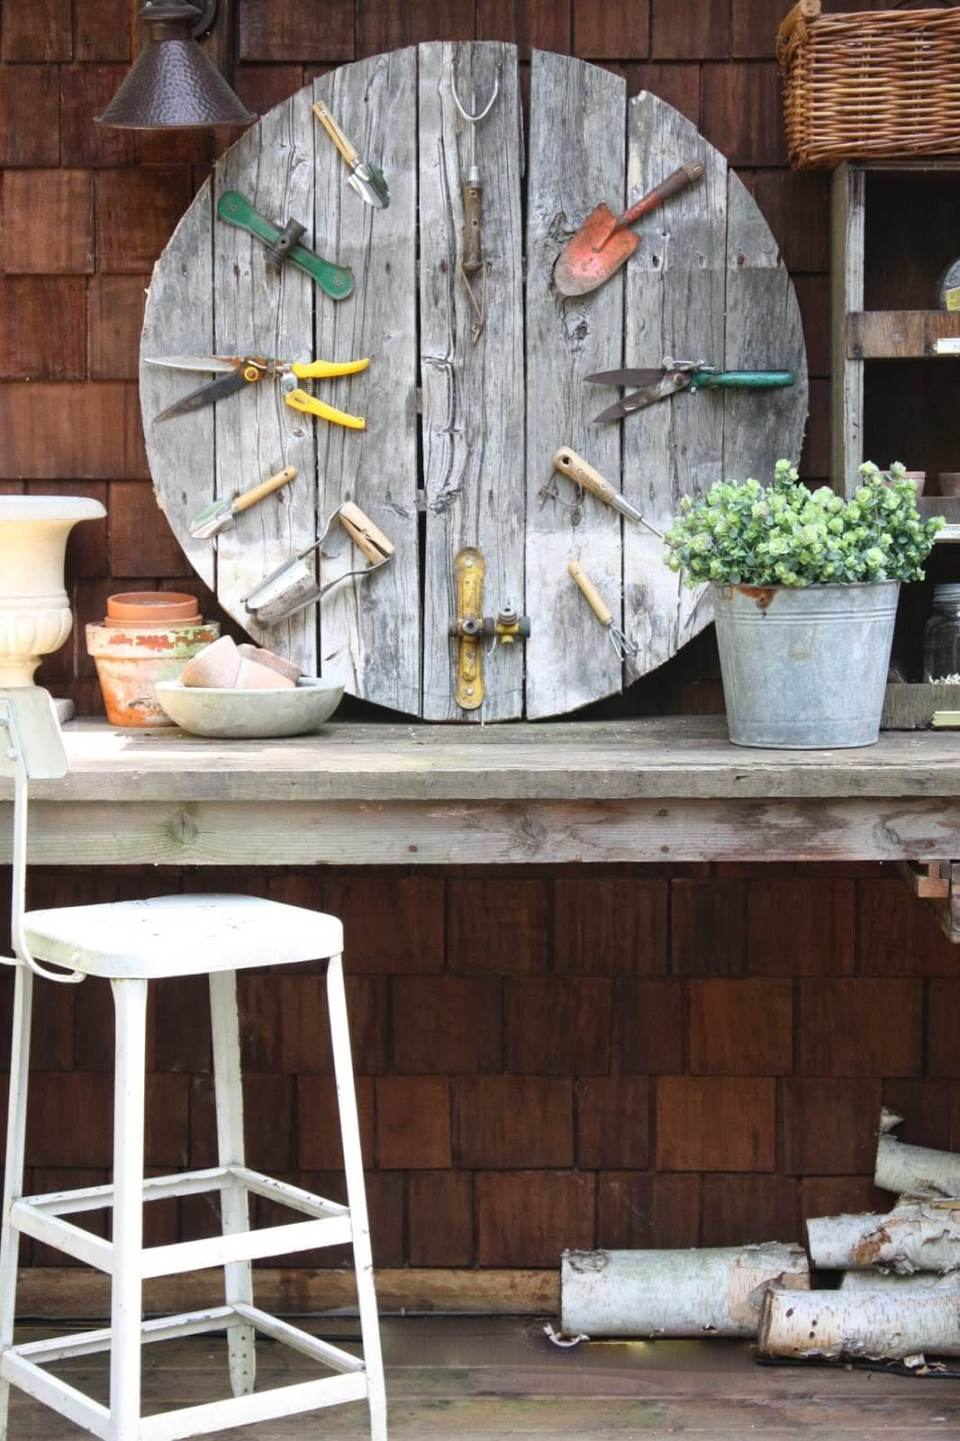 Garden pallet wall clock | Best DIY Repurposed Garden Tools Ideas | Garden Craft Ideas